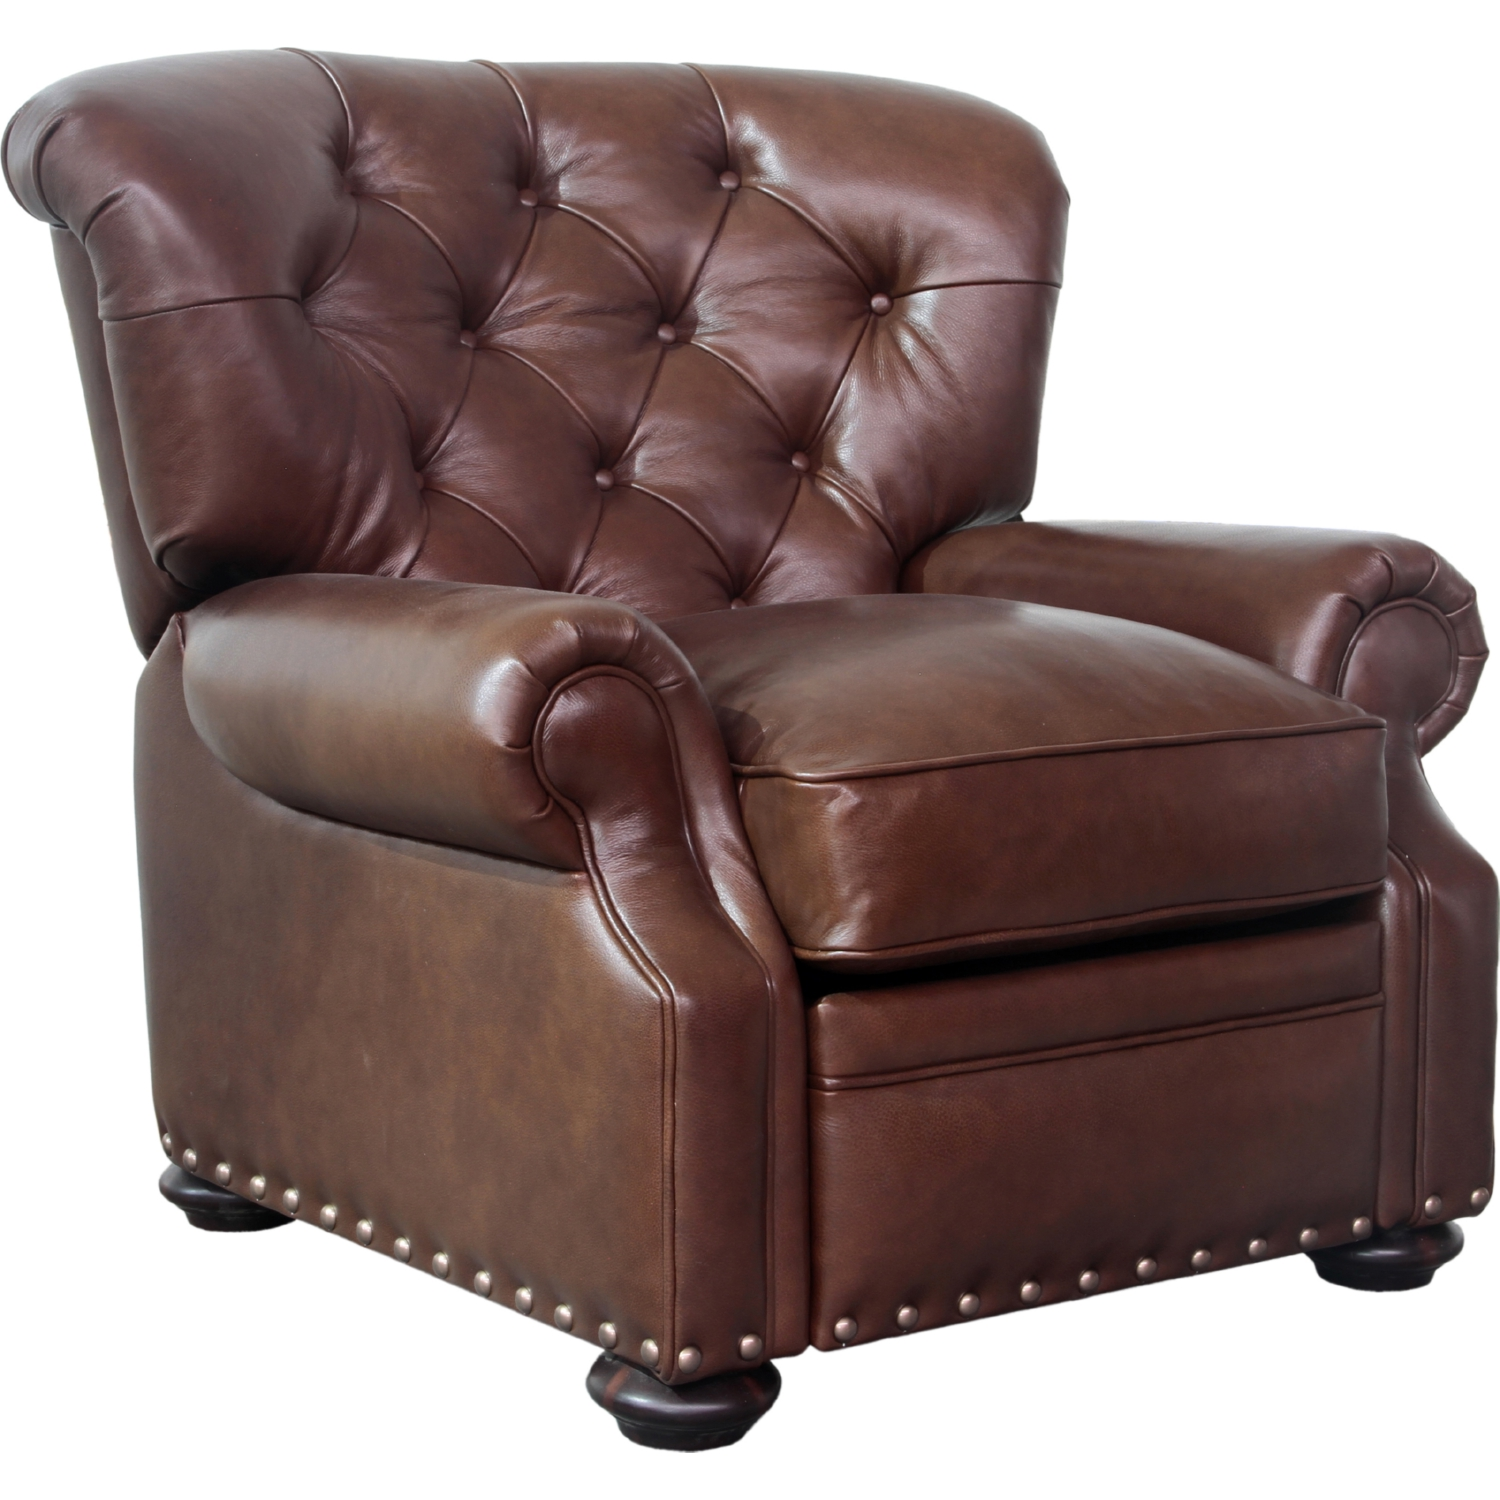 Sinclair Recliner in Shoreham Chocolate Leather  sc 1 st  Dynamic Home Decor & BarcaLounger 7-2167-5700-85 Sinclair Recliner in Shoreham ... islam-shia.org